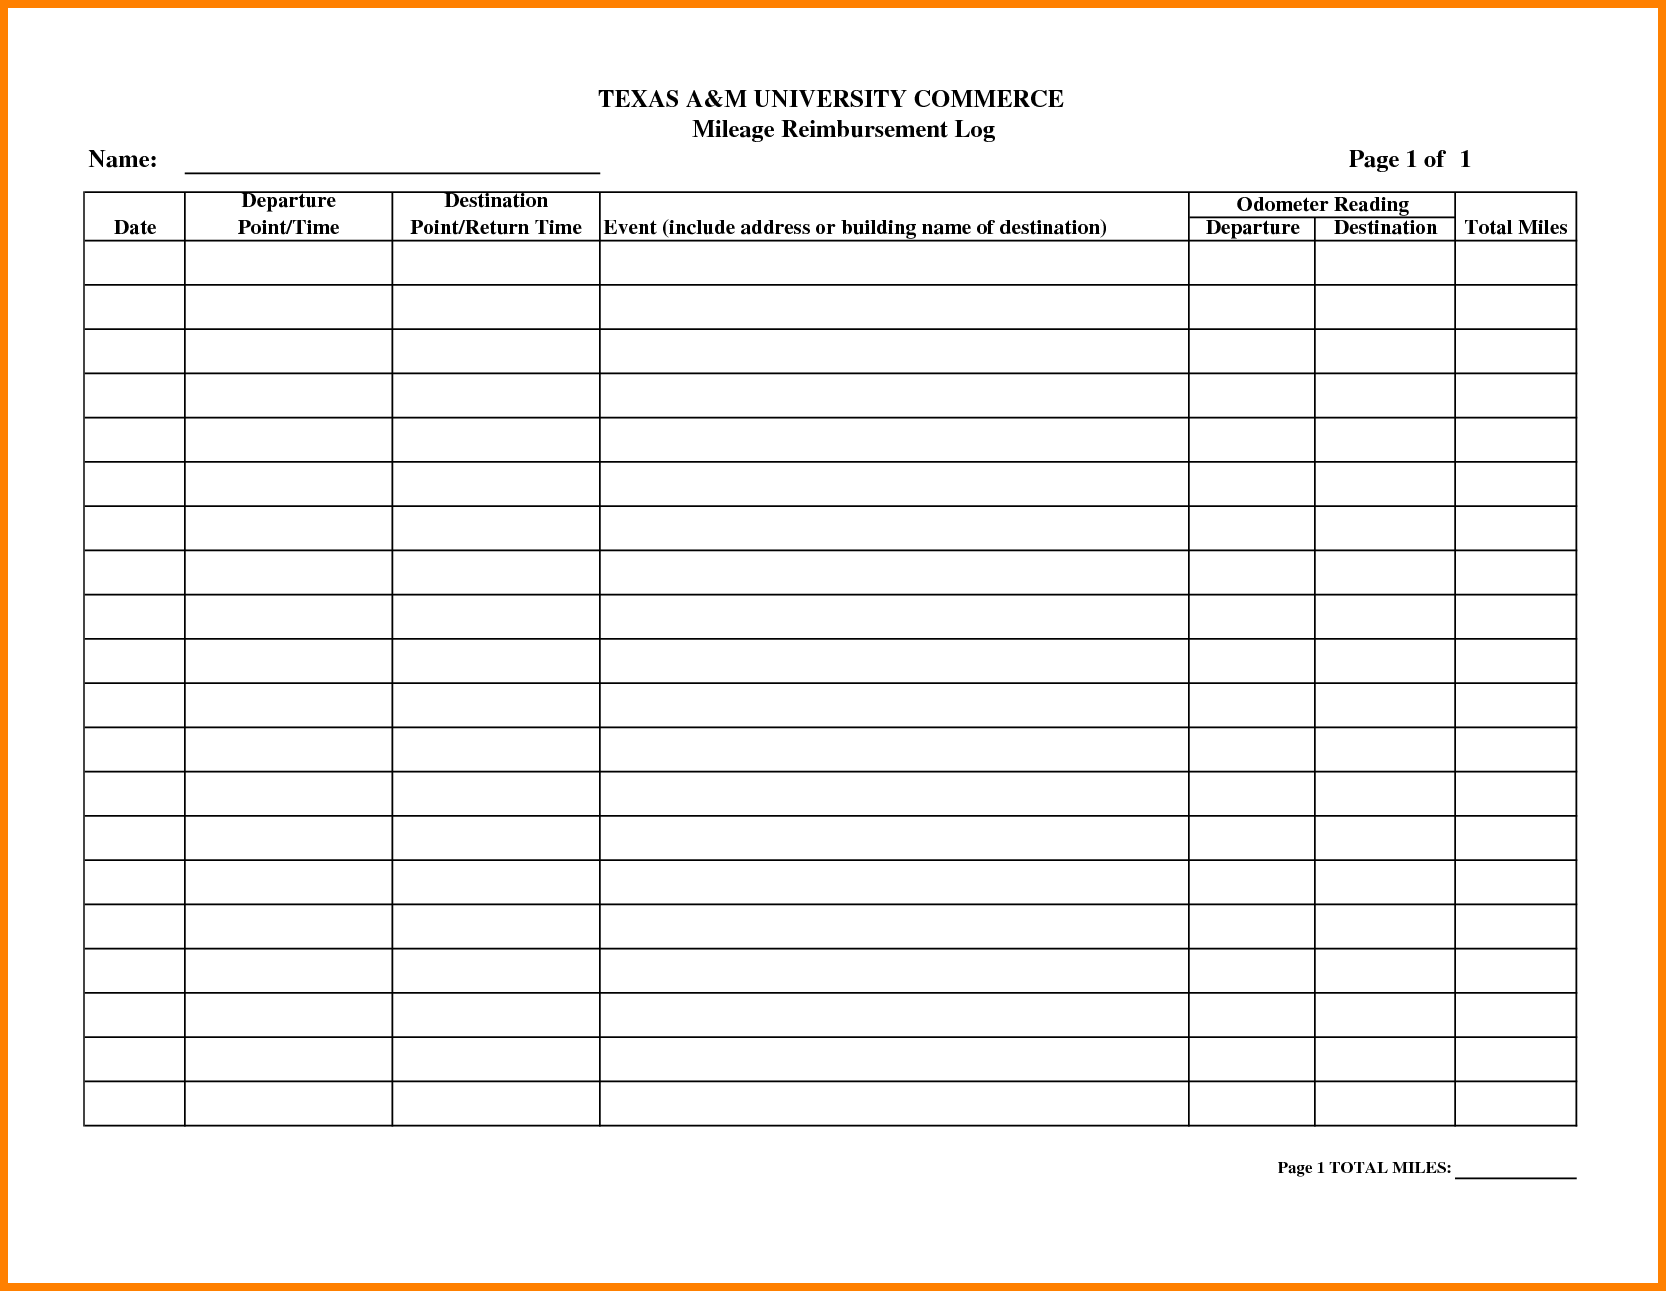 mileage reimbursement forms   Physic.minimalistics.co